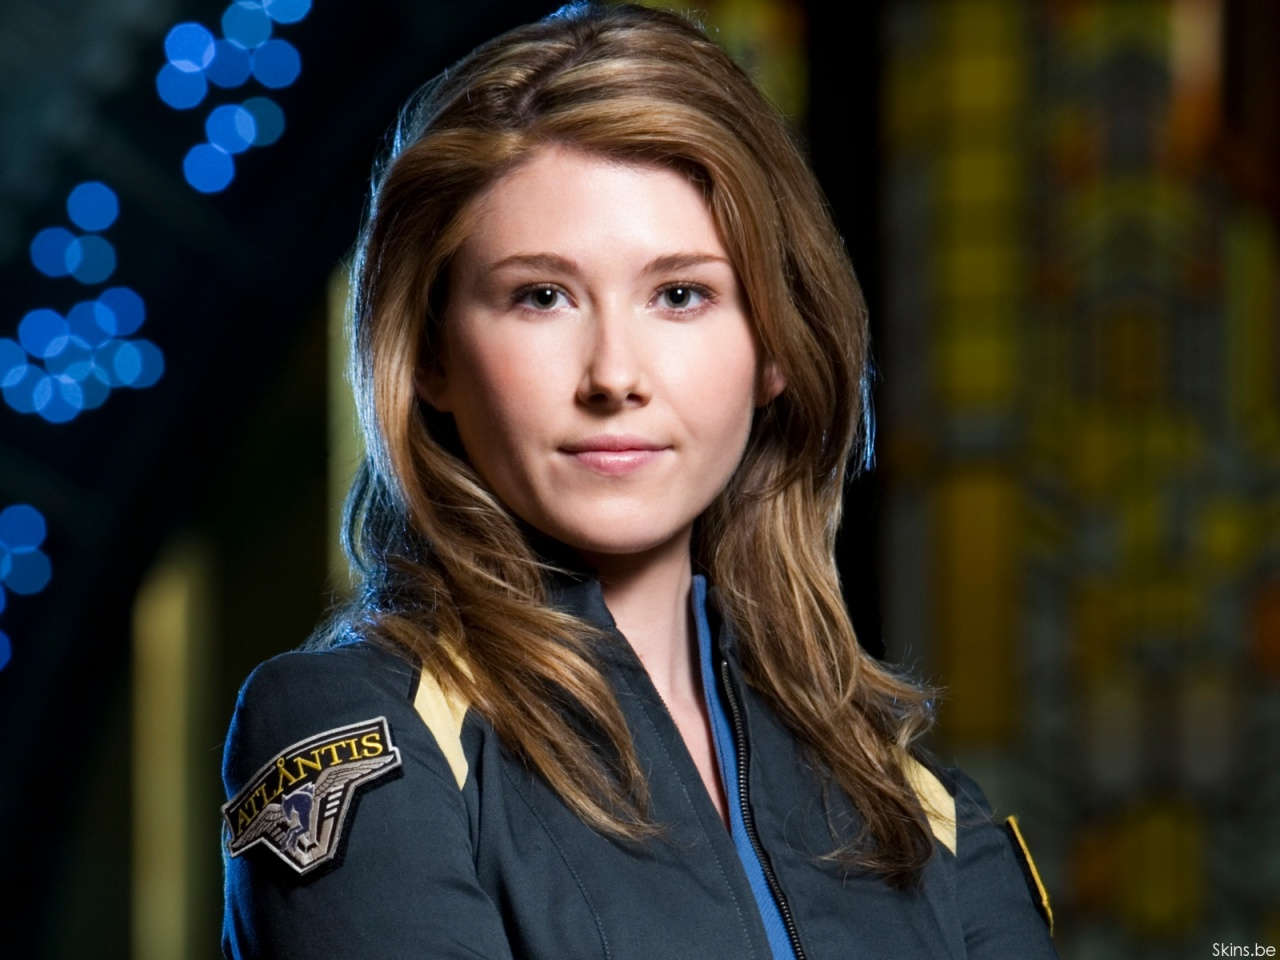 Jewel Staite se unirá a Legends of Tomorrow